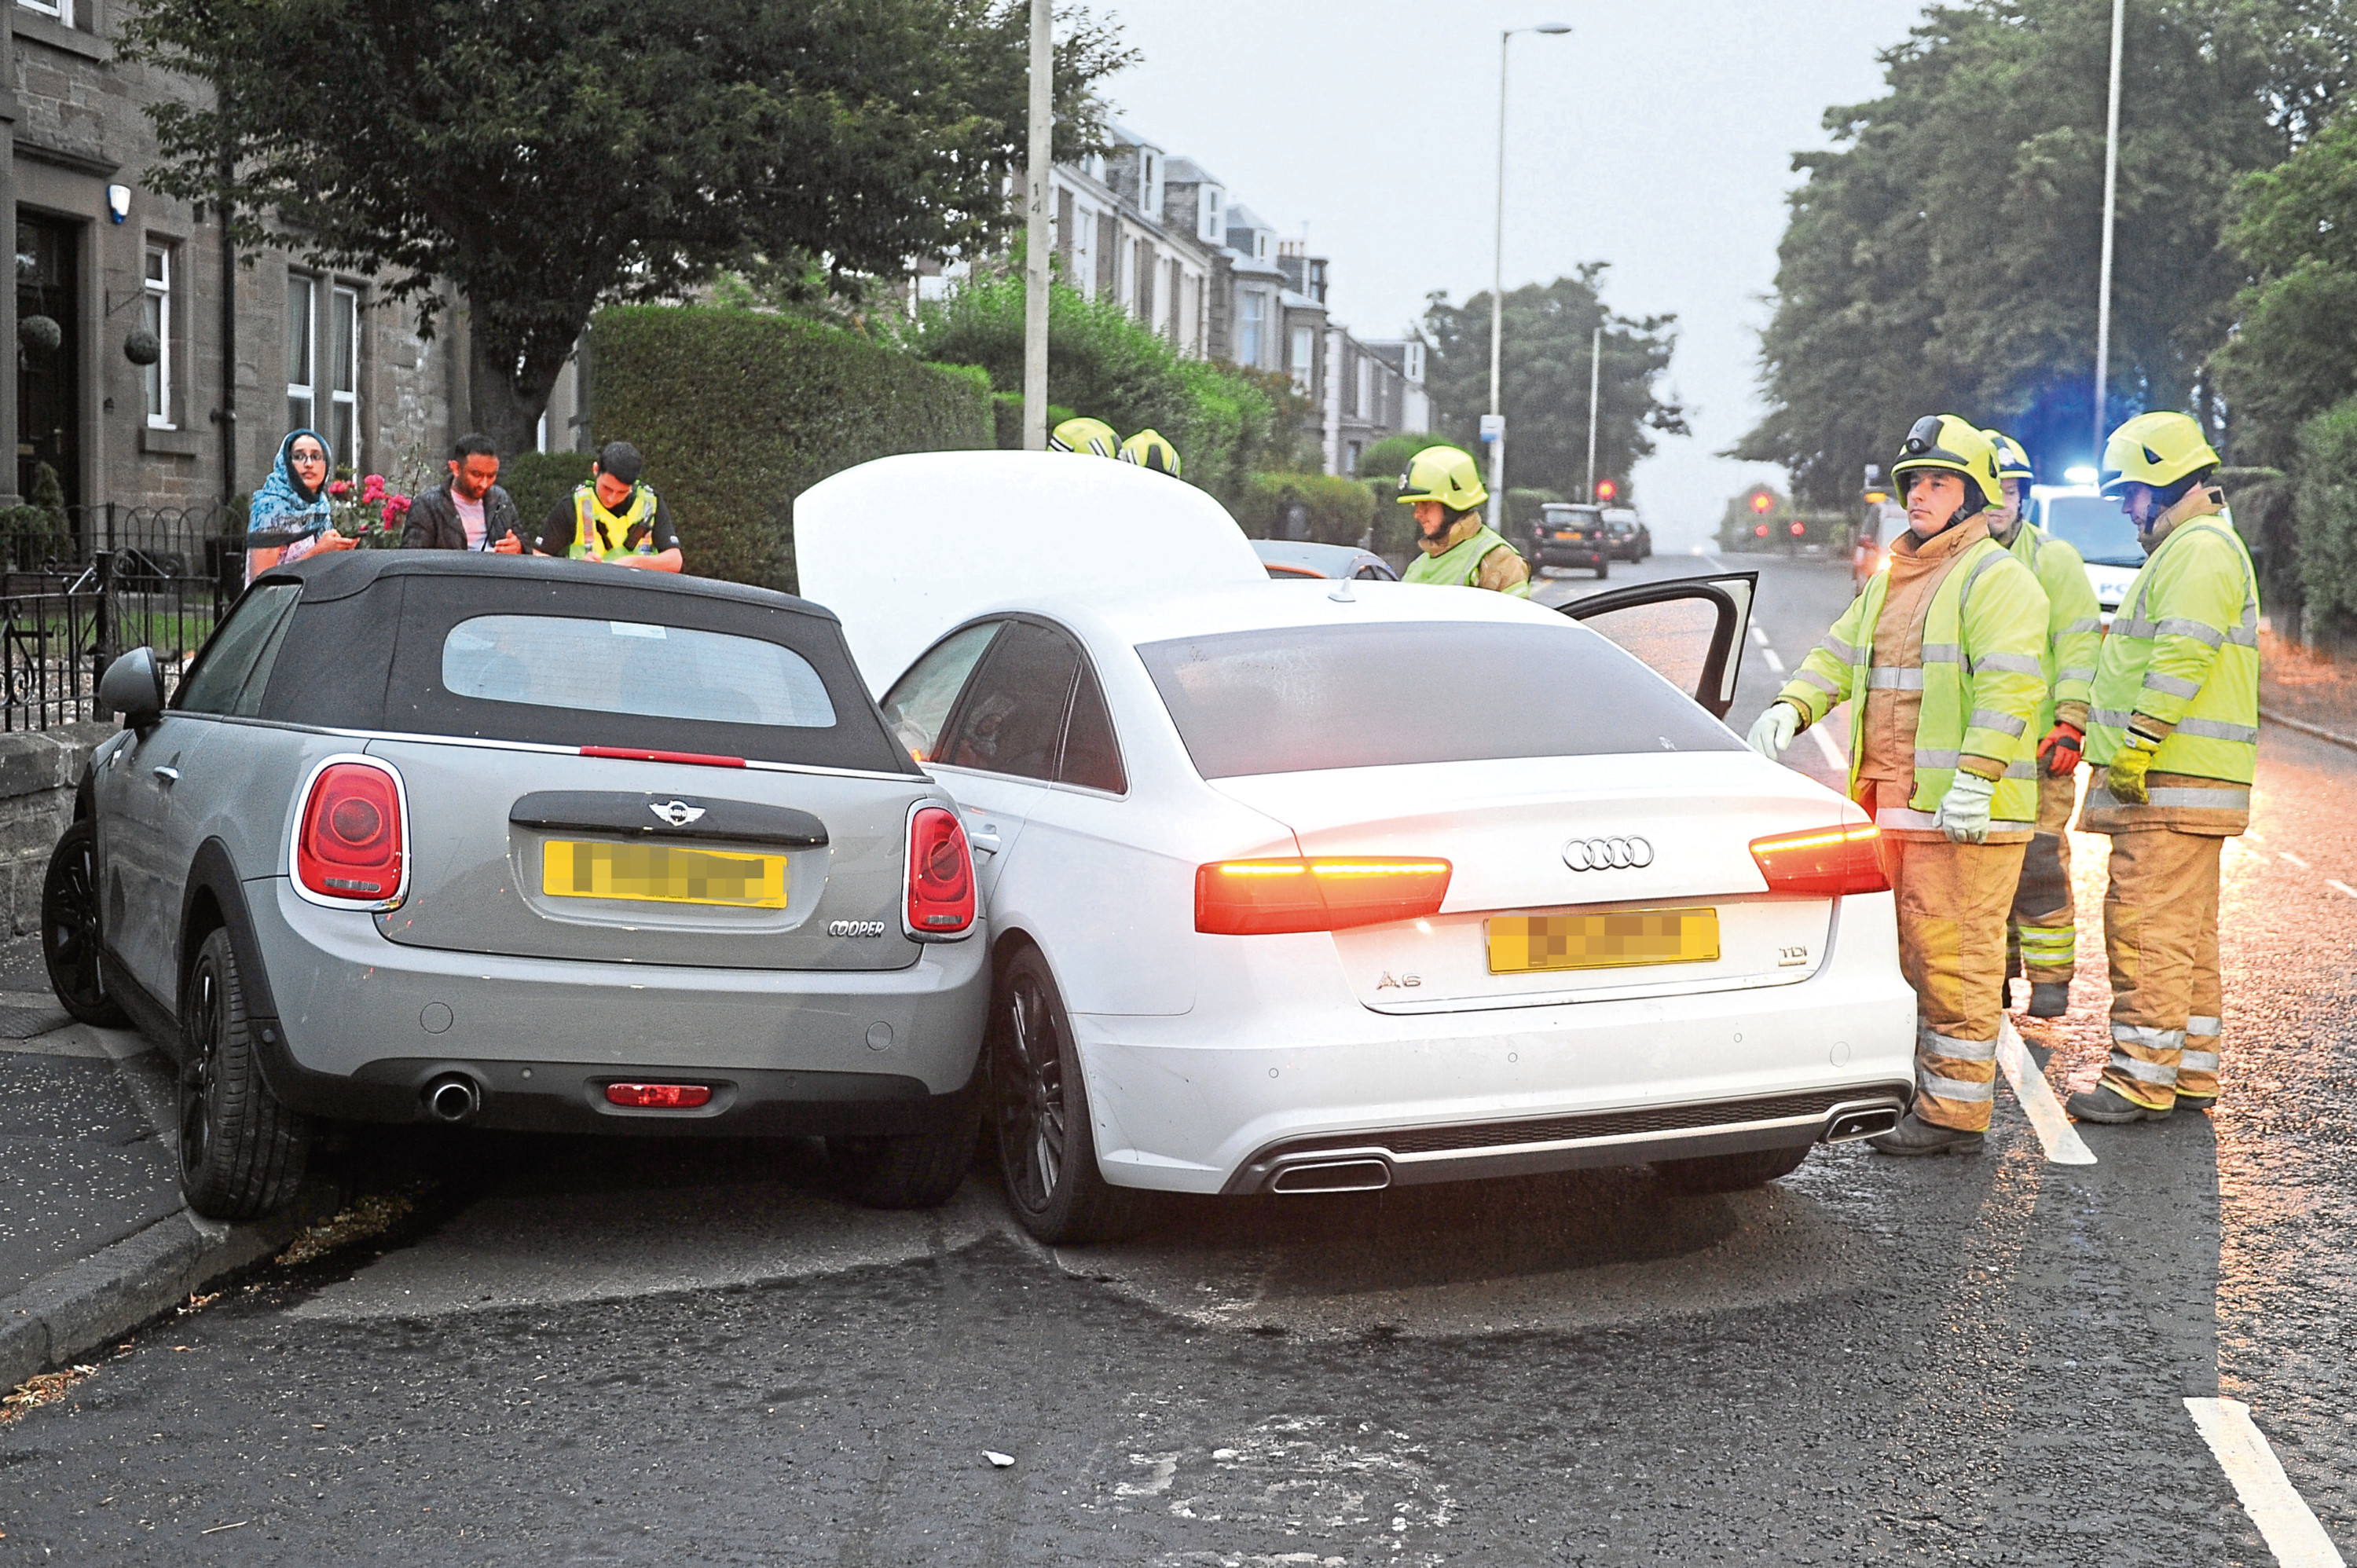 An Audi A6 collided with several vehicles parked at the side of the road Thursday morning.